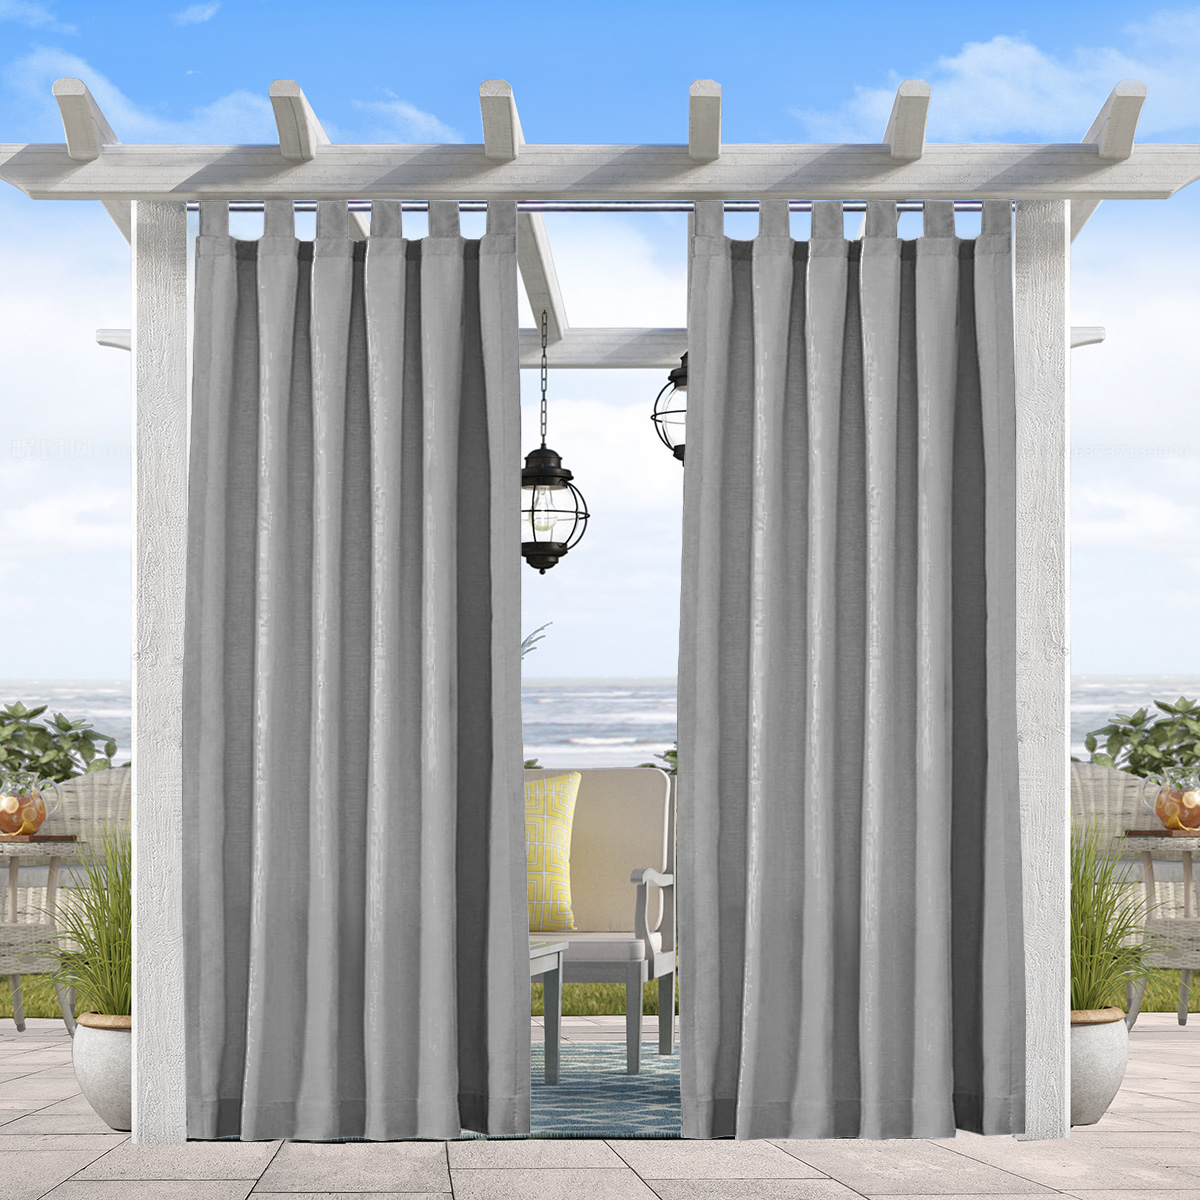 Pro Space 2 Panels Outdoor Curtains Tab Top 4 Long Window Curtain For Pergola Patio Balcony 50 W X 120 L Gray Walmart Com Walmart Com